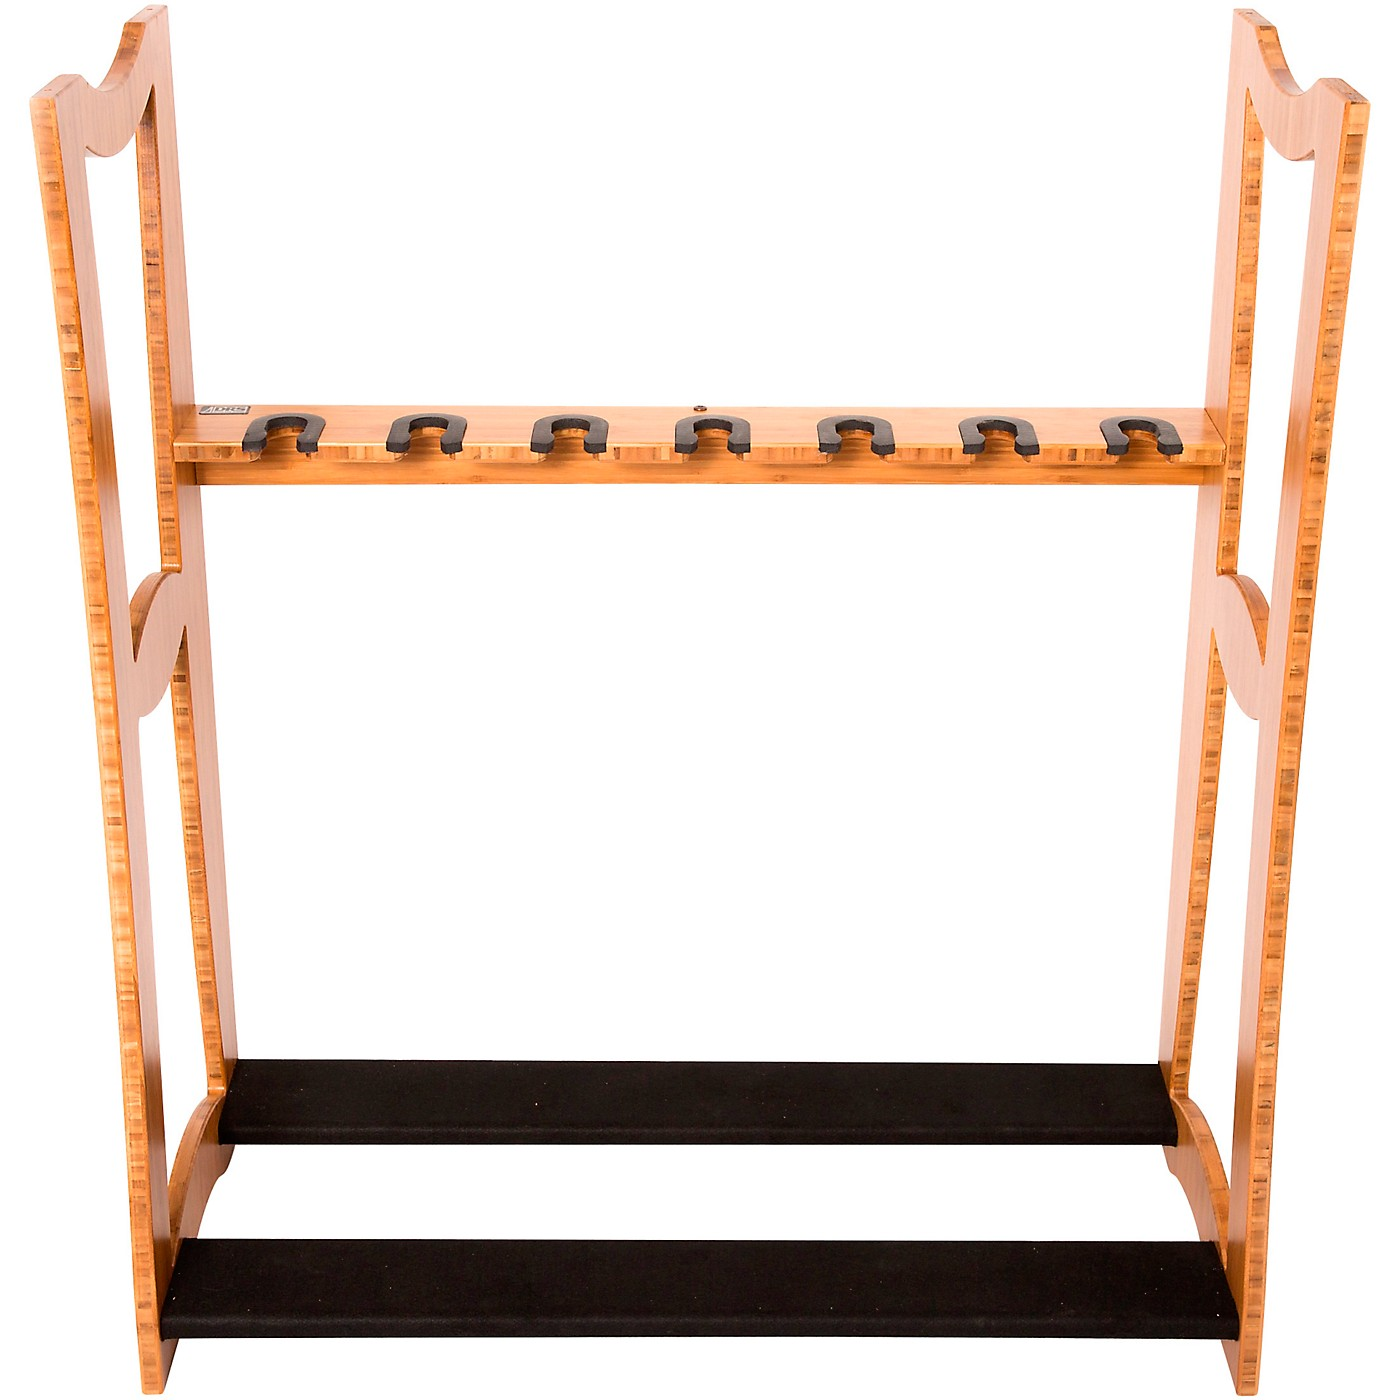 DRS Racks Bravo7 Guitar Rack thumbnail